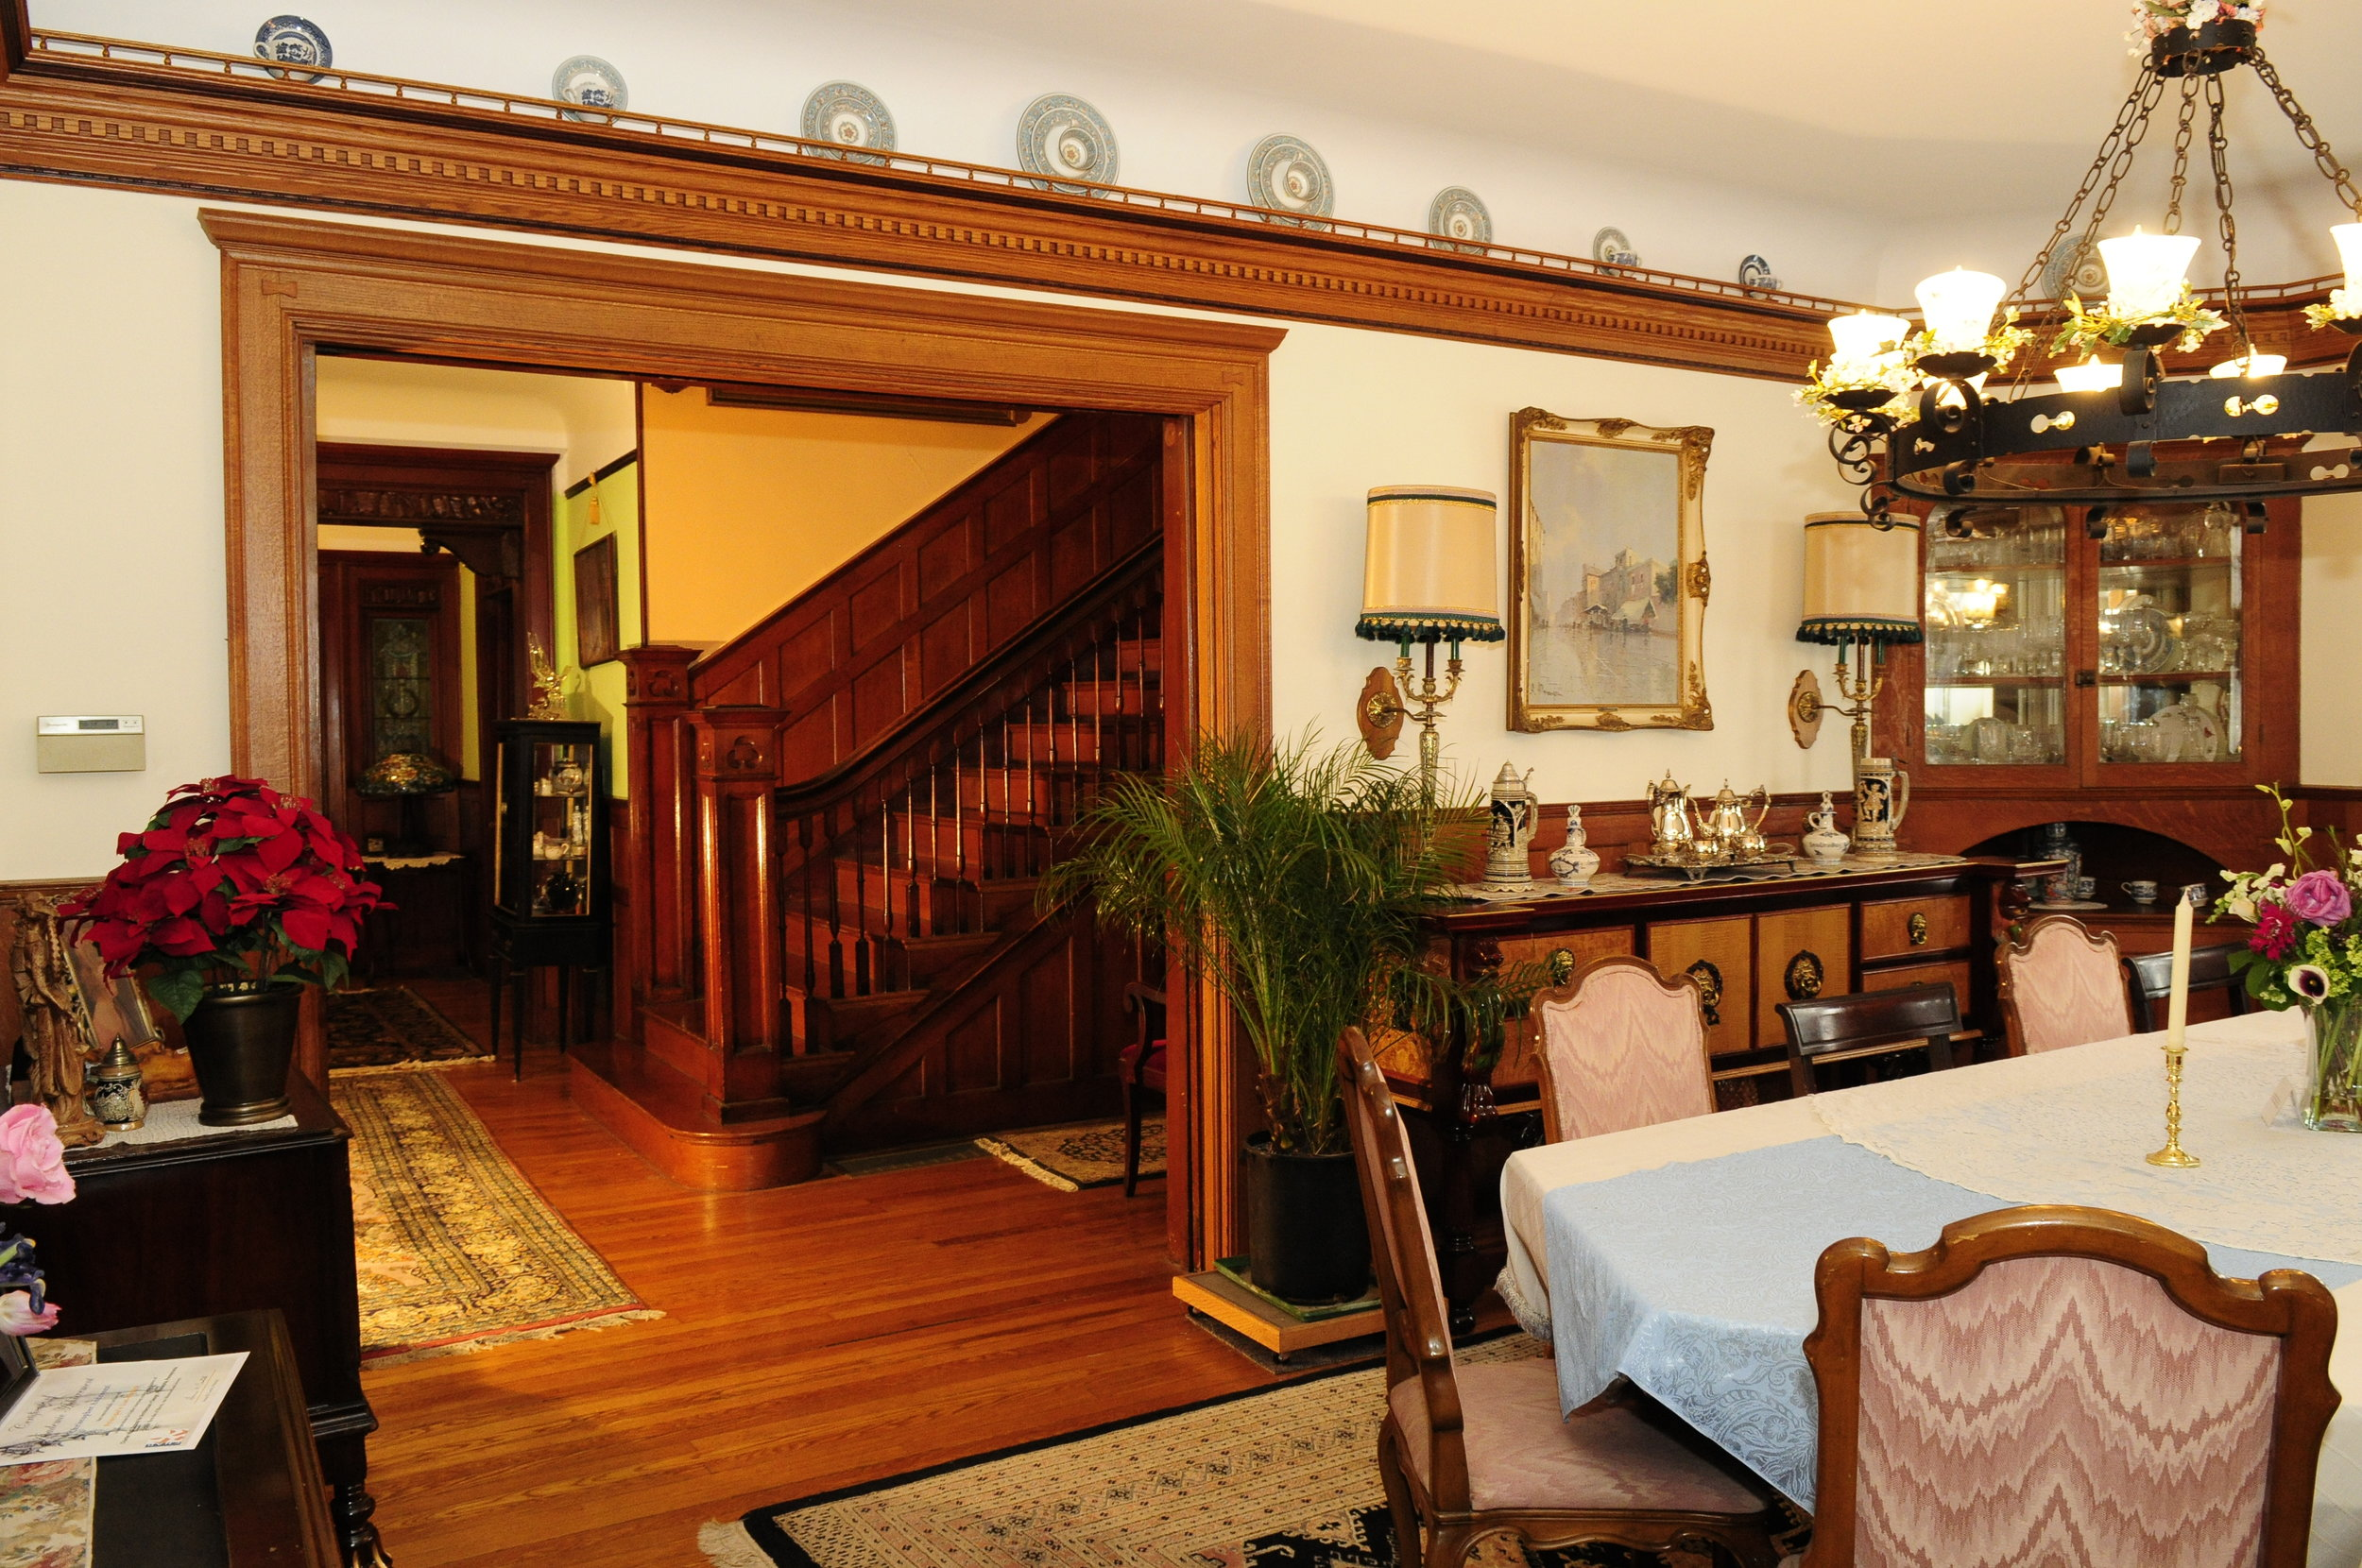 Larry designed and built this seven-piece built-up oak crown molding and added a plate rail and gallery.